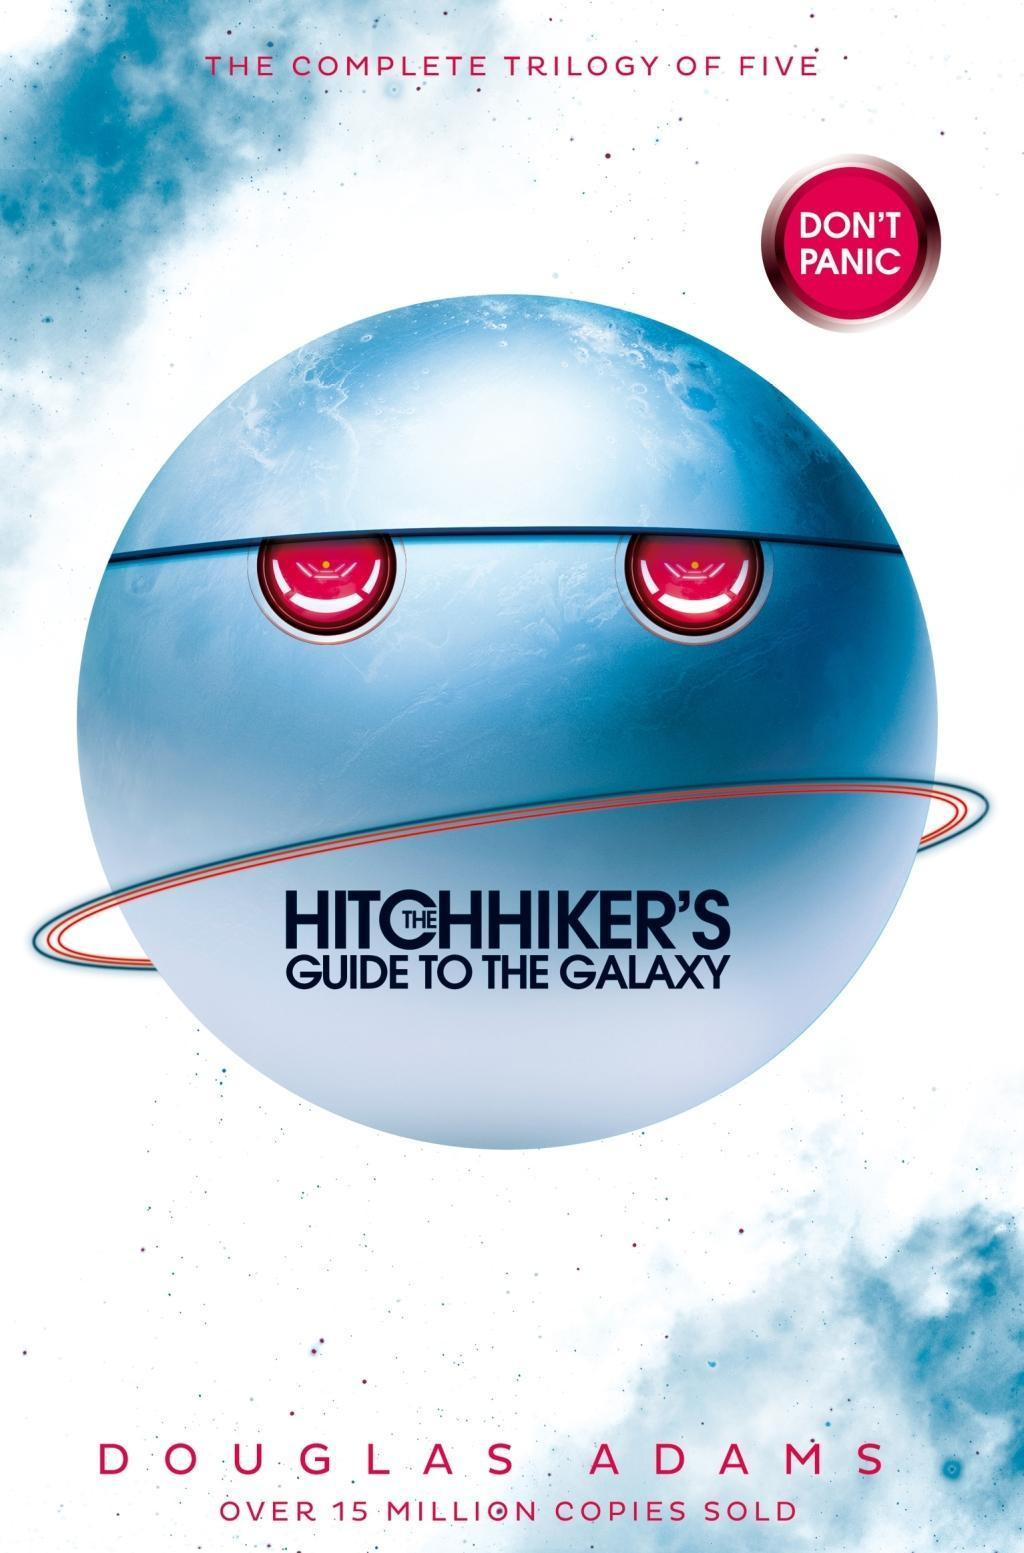 The Hitchhiker's Guide to the Galaxy OmnibusA Trilogy in Five Parts by Douglas Adams, ISBN: 9781509852796